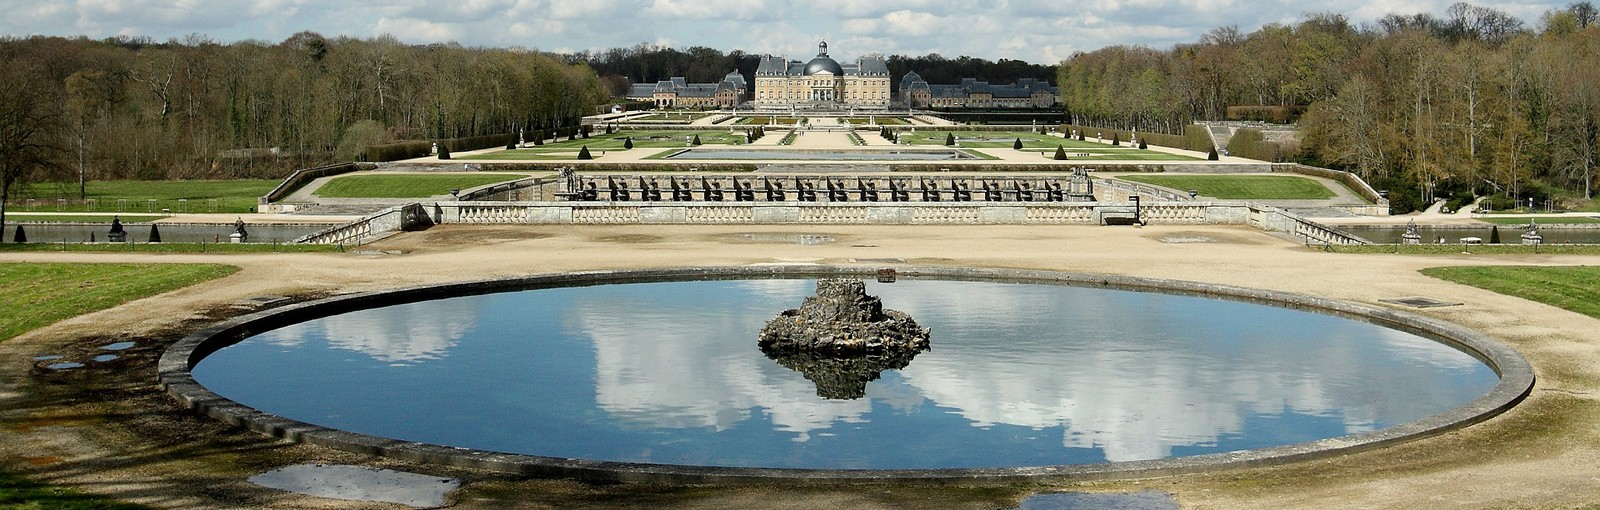 Tours Vaux-le-Vicomte - Half days - Day tours from Paris